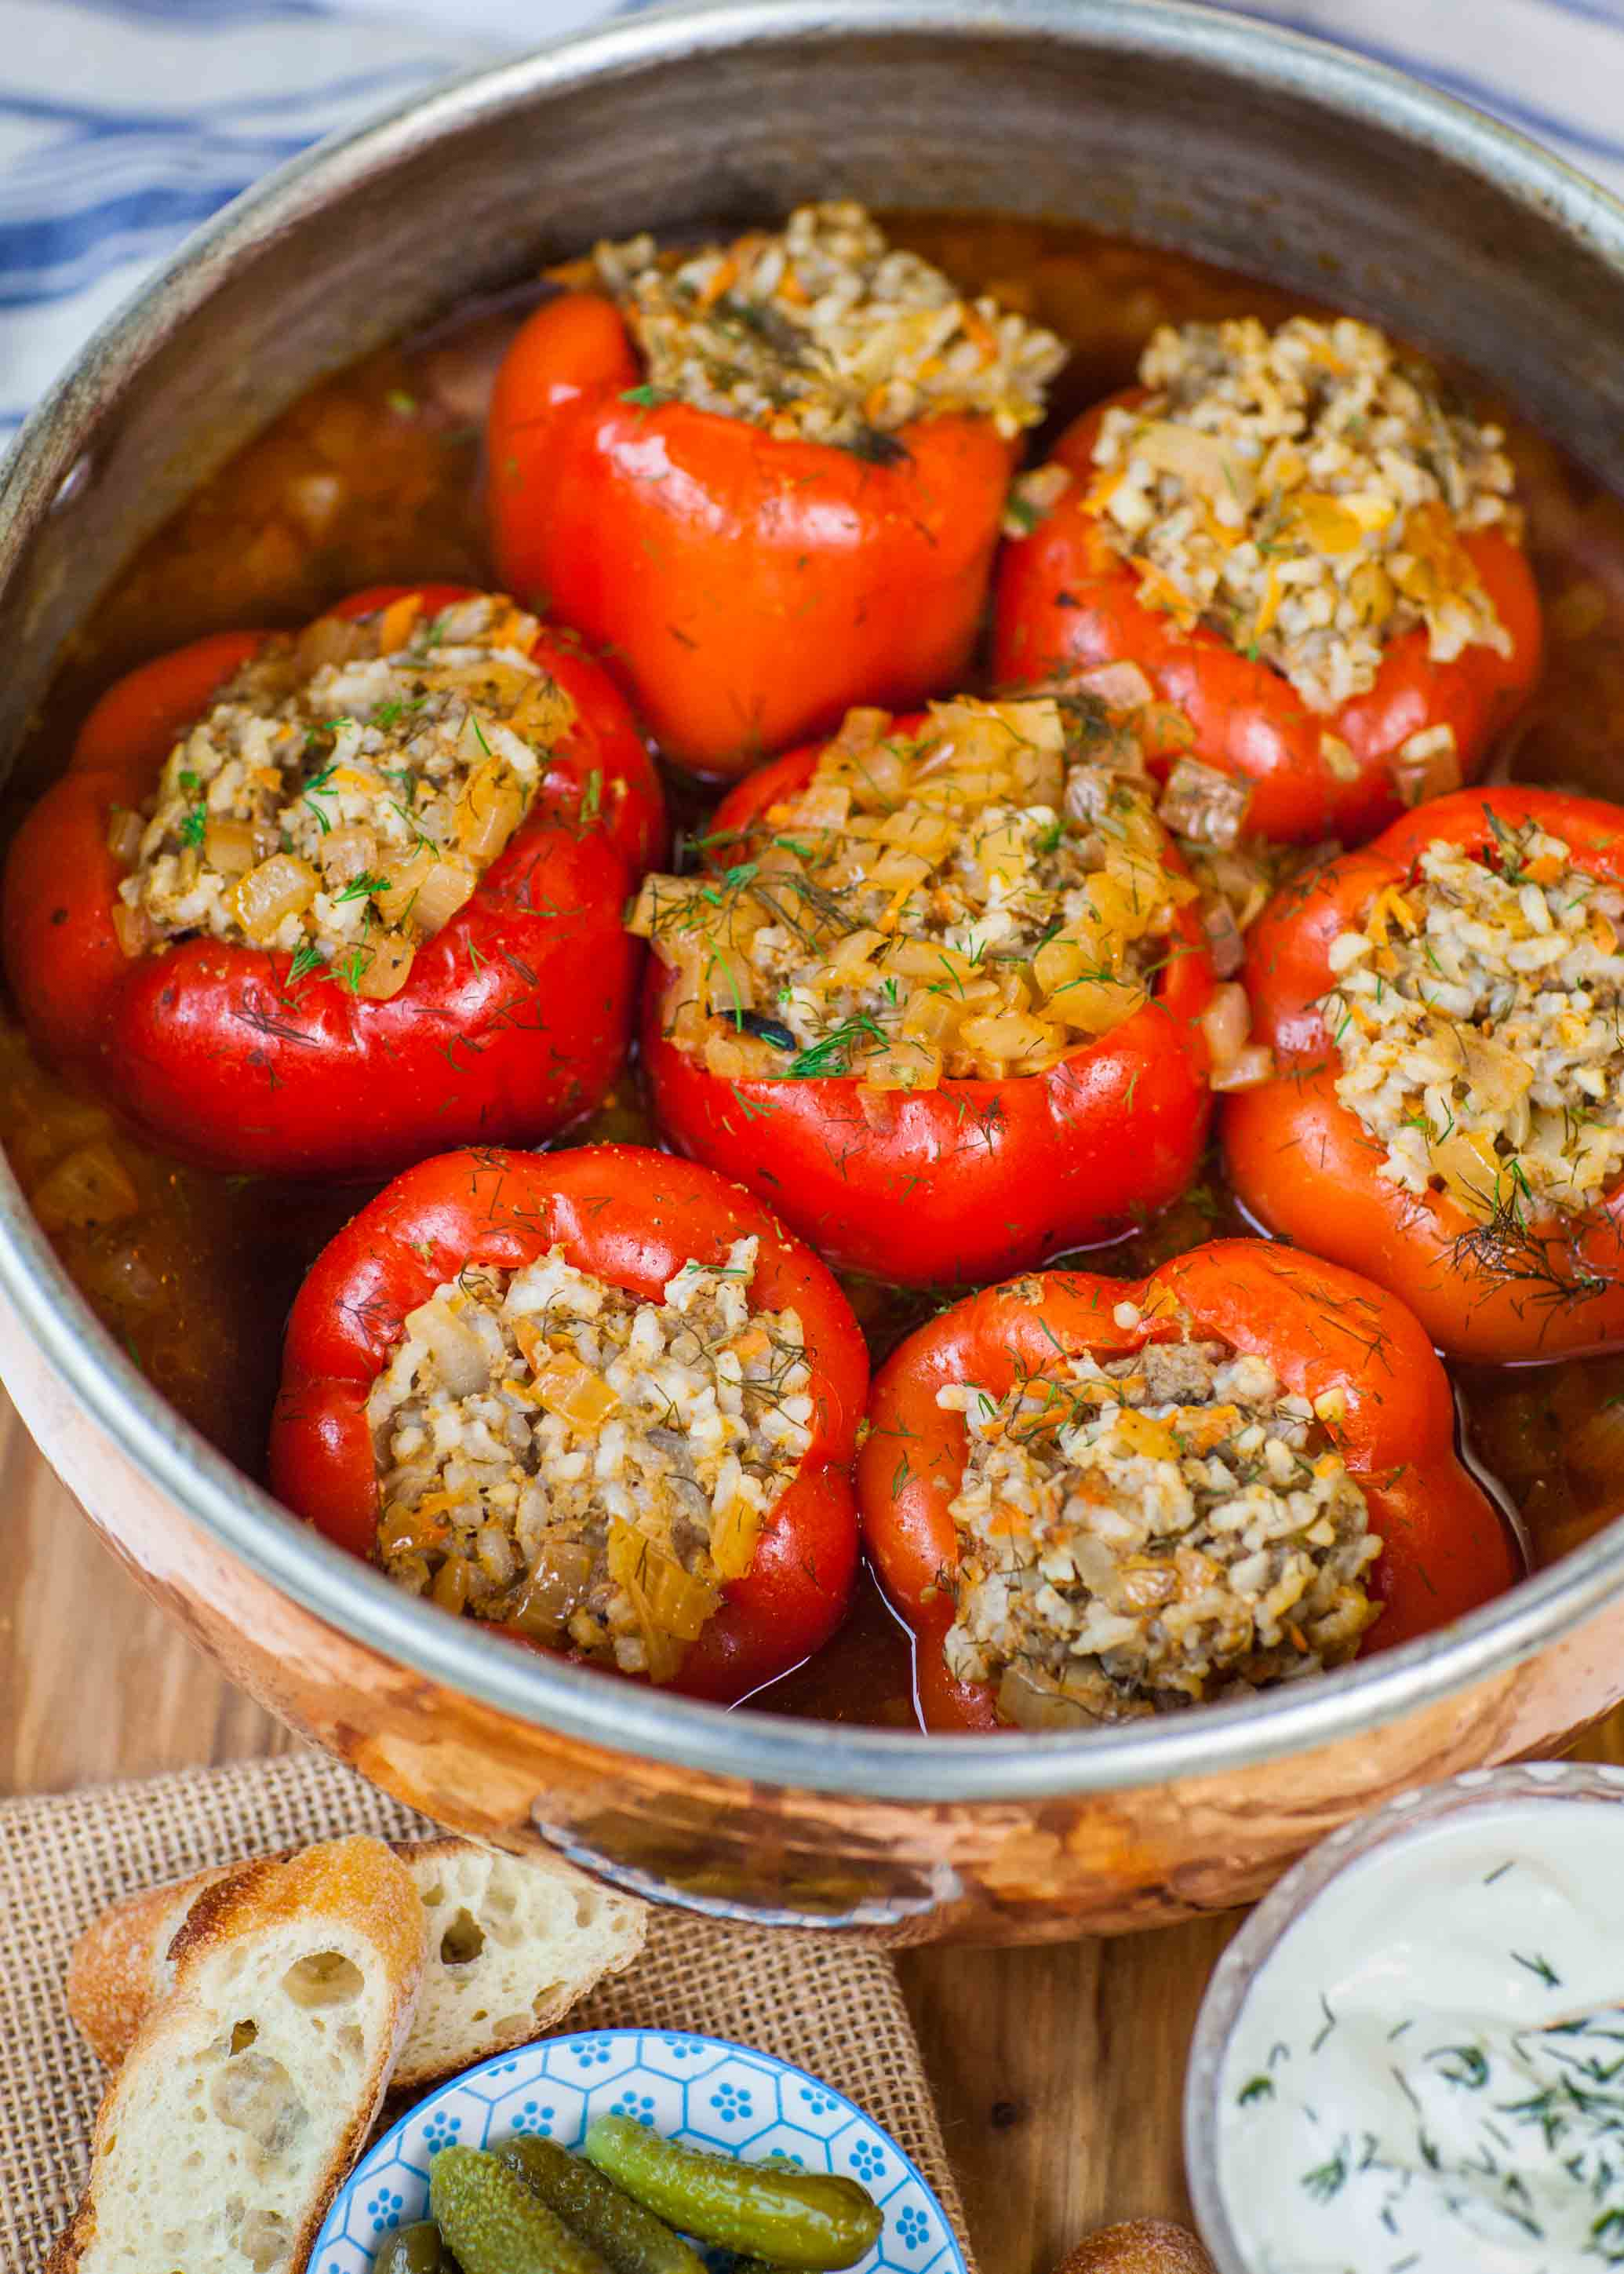 How to make stuffed pepper with rice